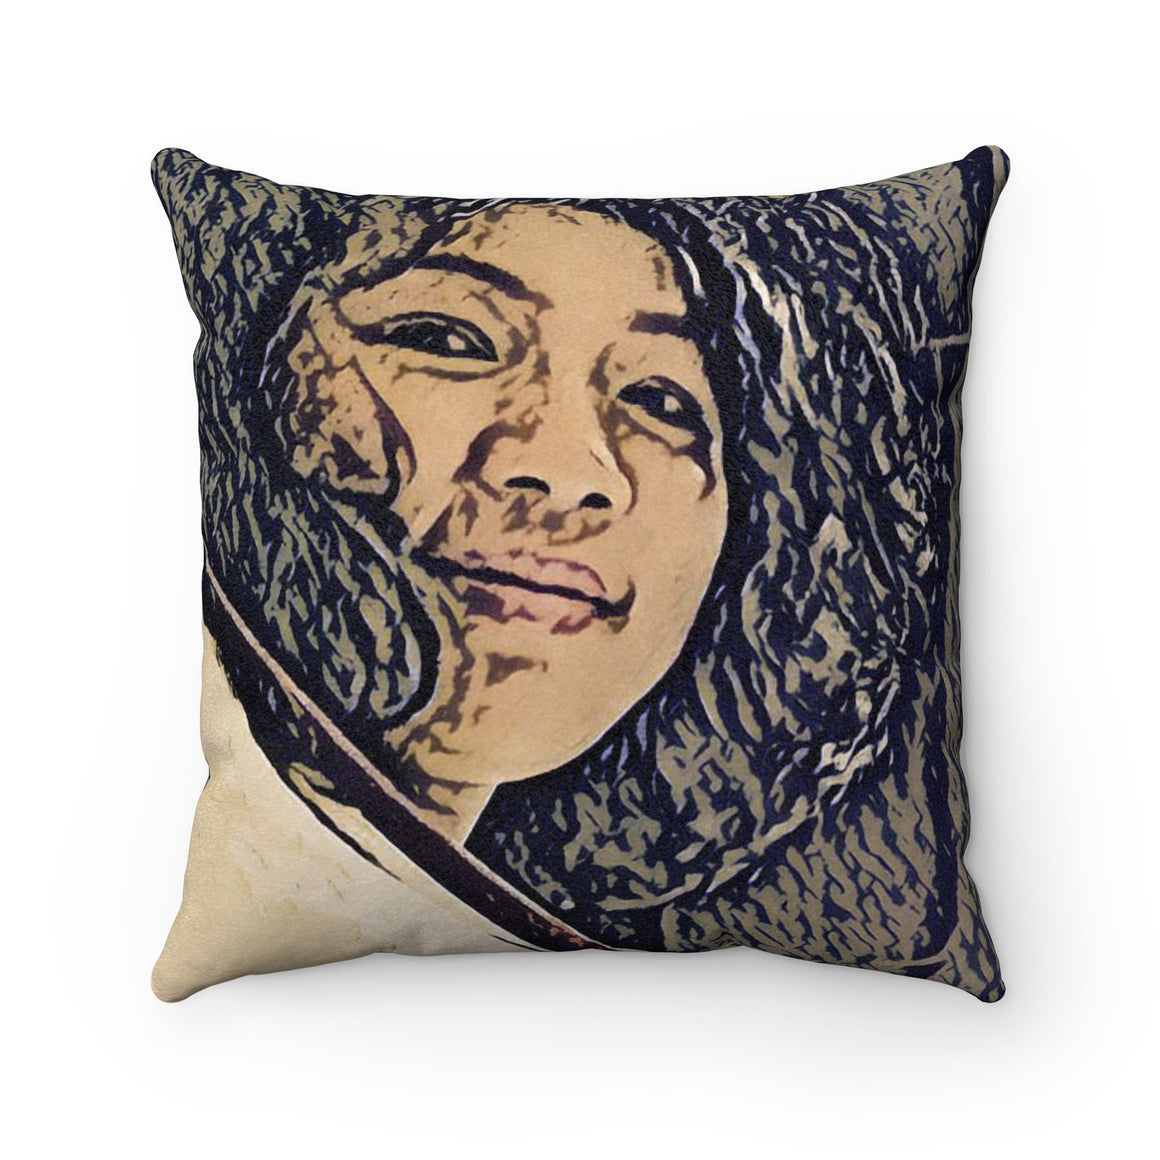 Levi Thang Vintage Face Design L Faux Suede Square Pillow Case